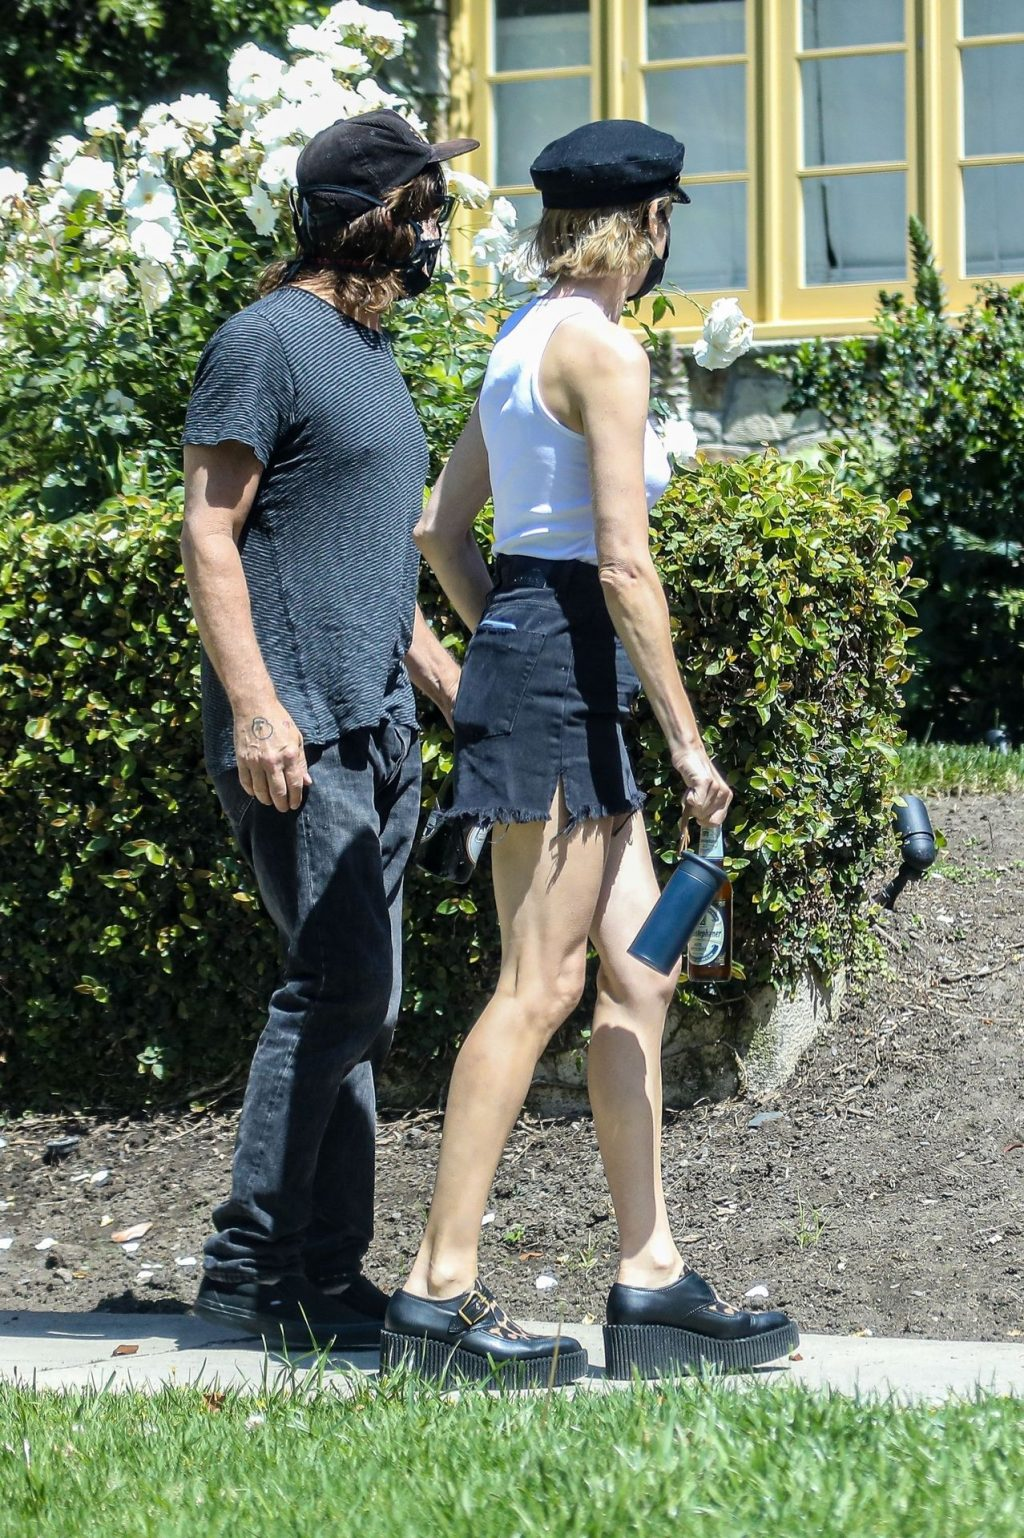 Diane Kruger & Norman Reedus Attend a House Party During the COVID-19 Outbreak (27 Photos)